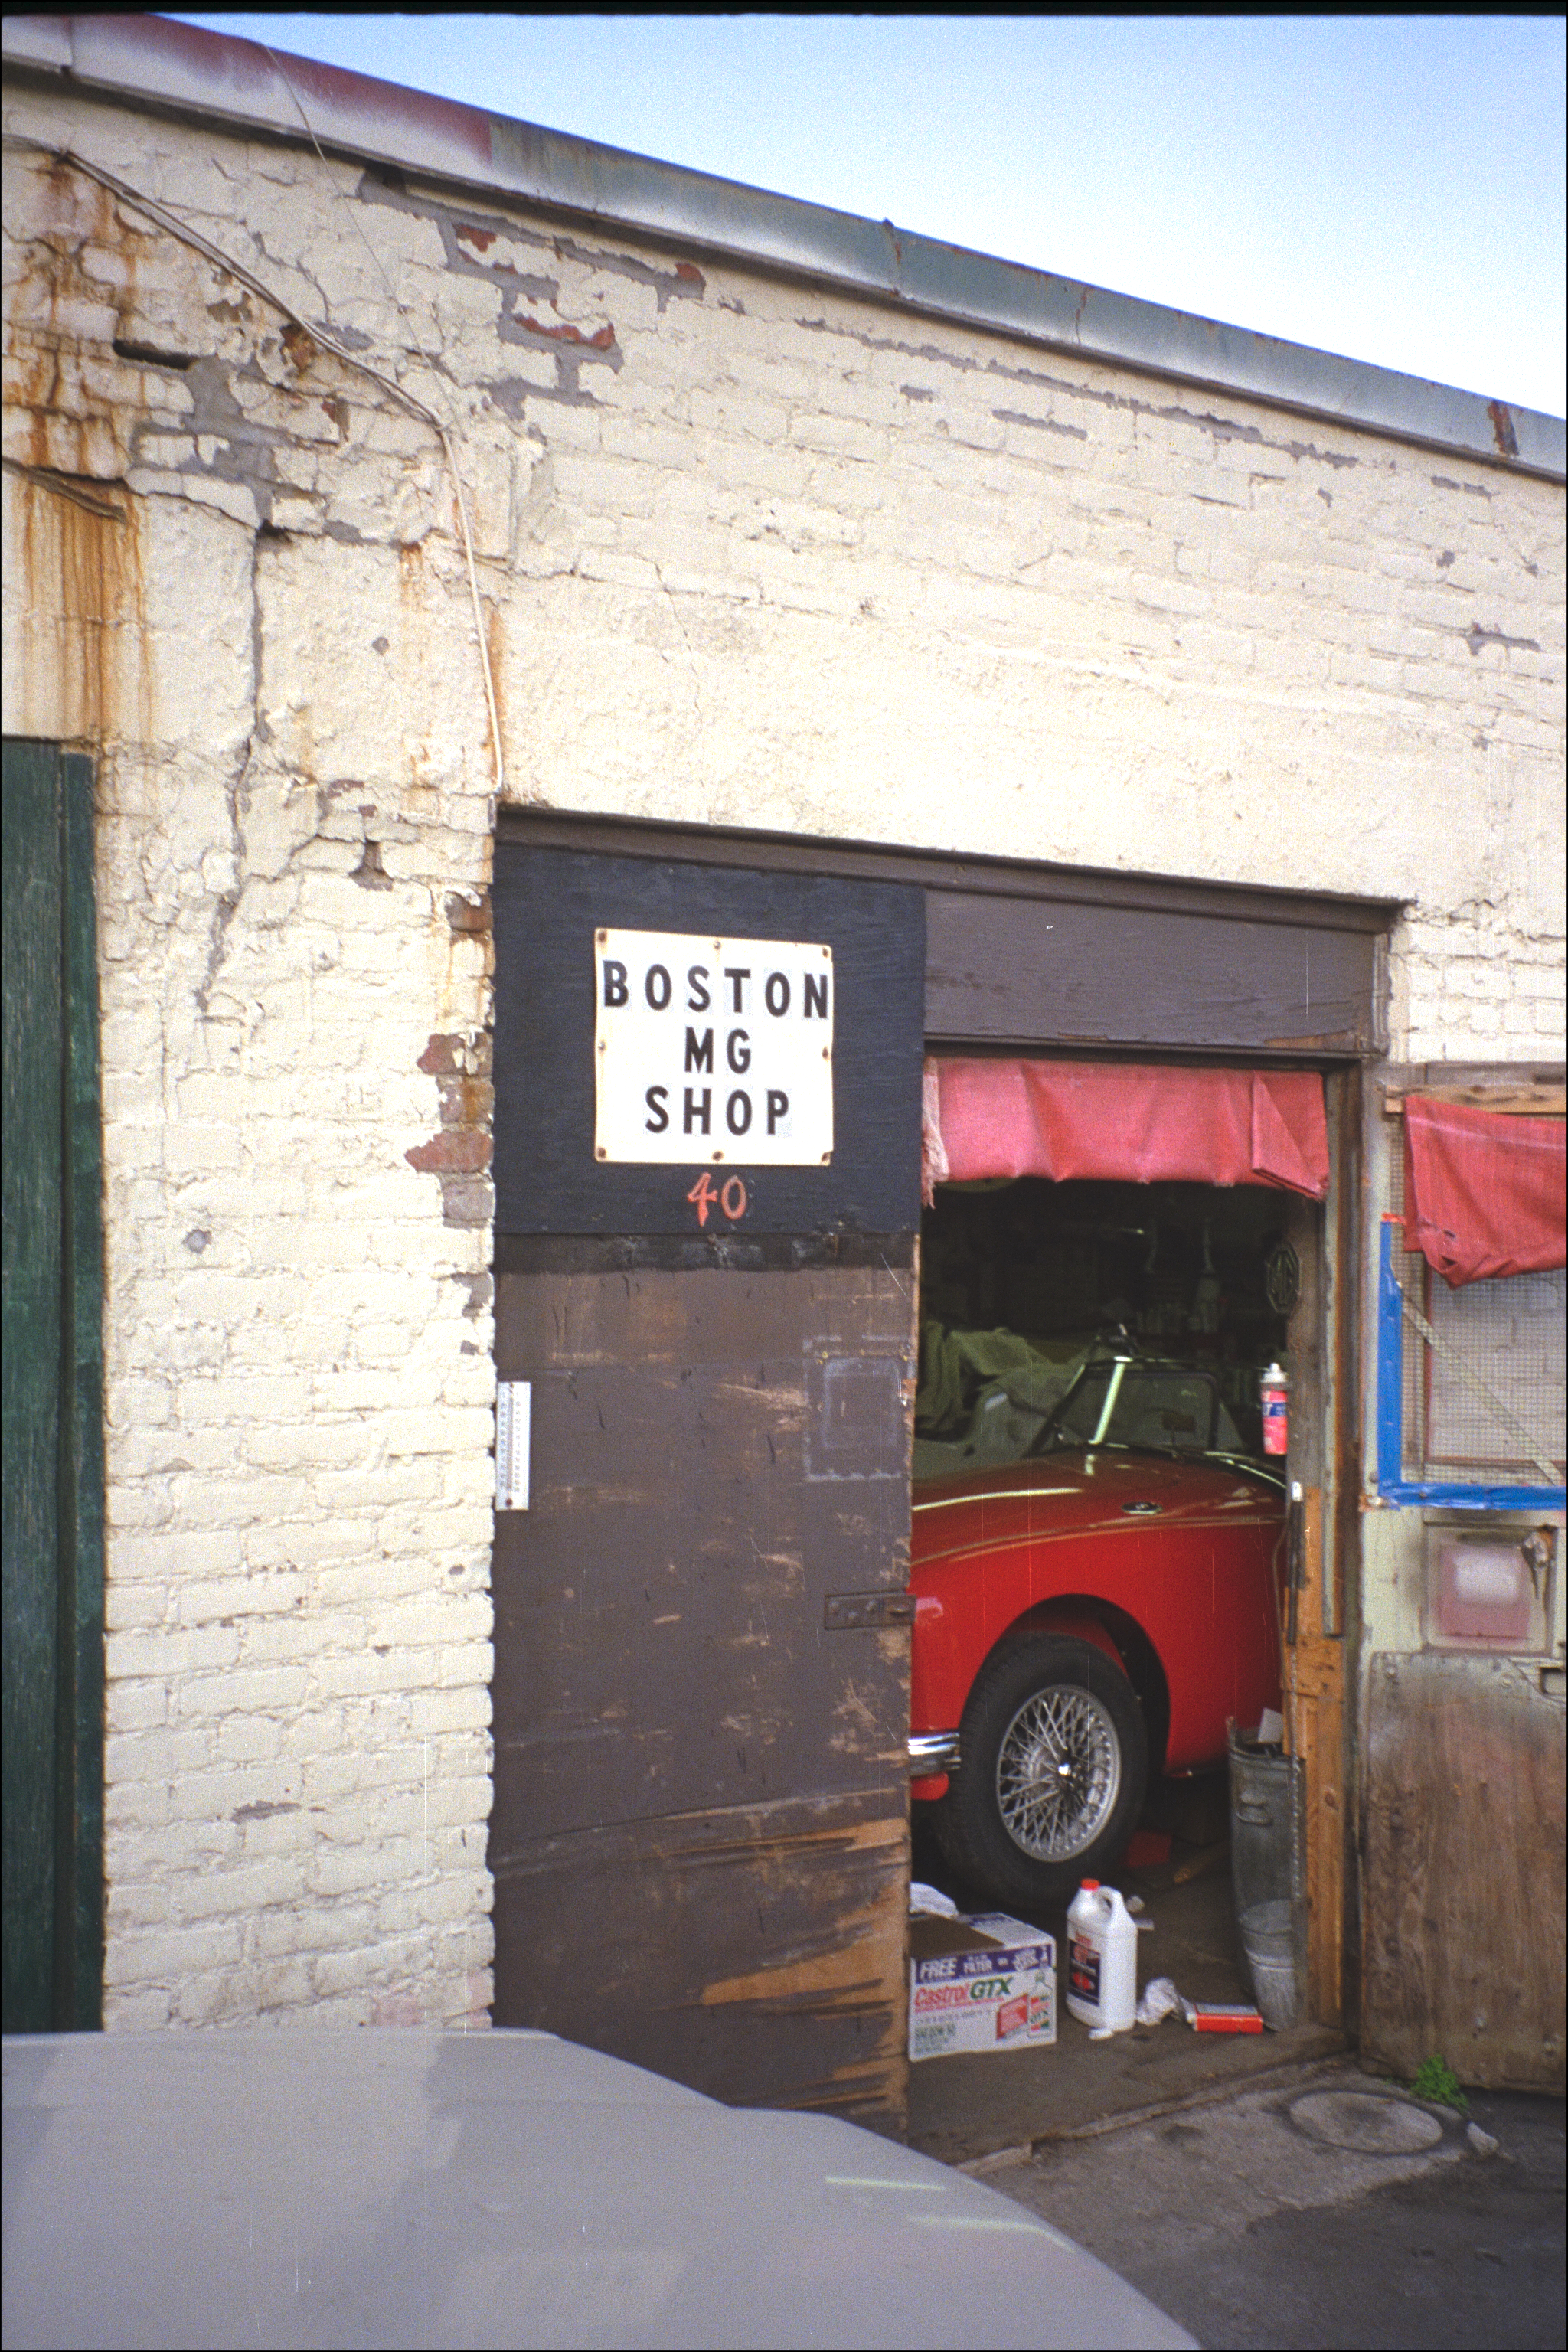 IMG2026 The Boston MG Shop, in Brighton in those days